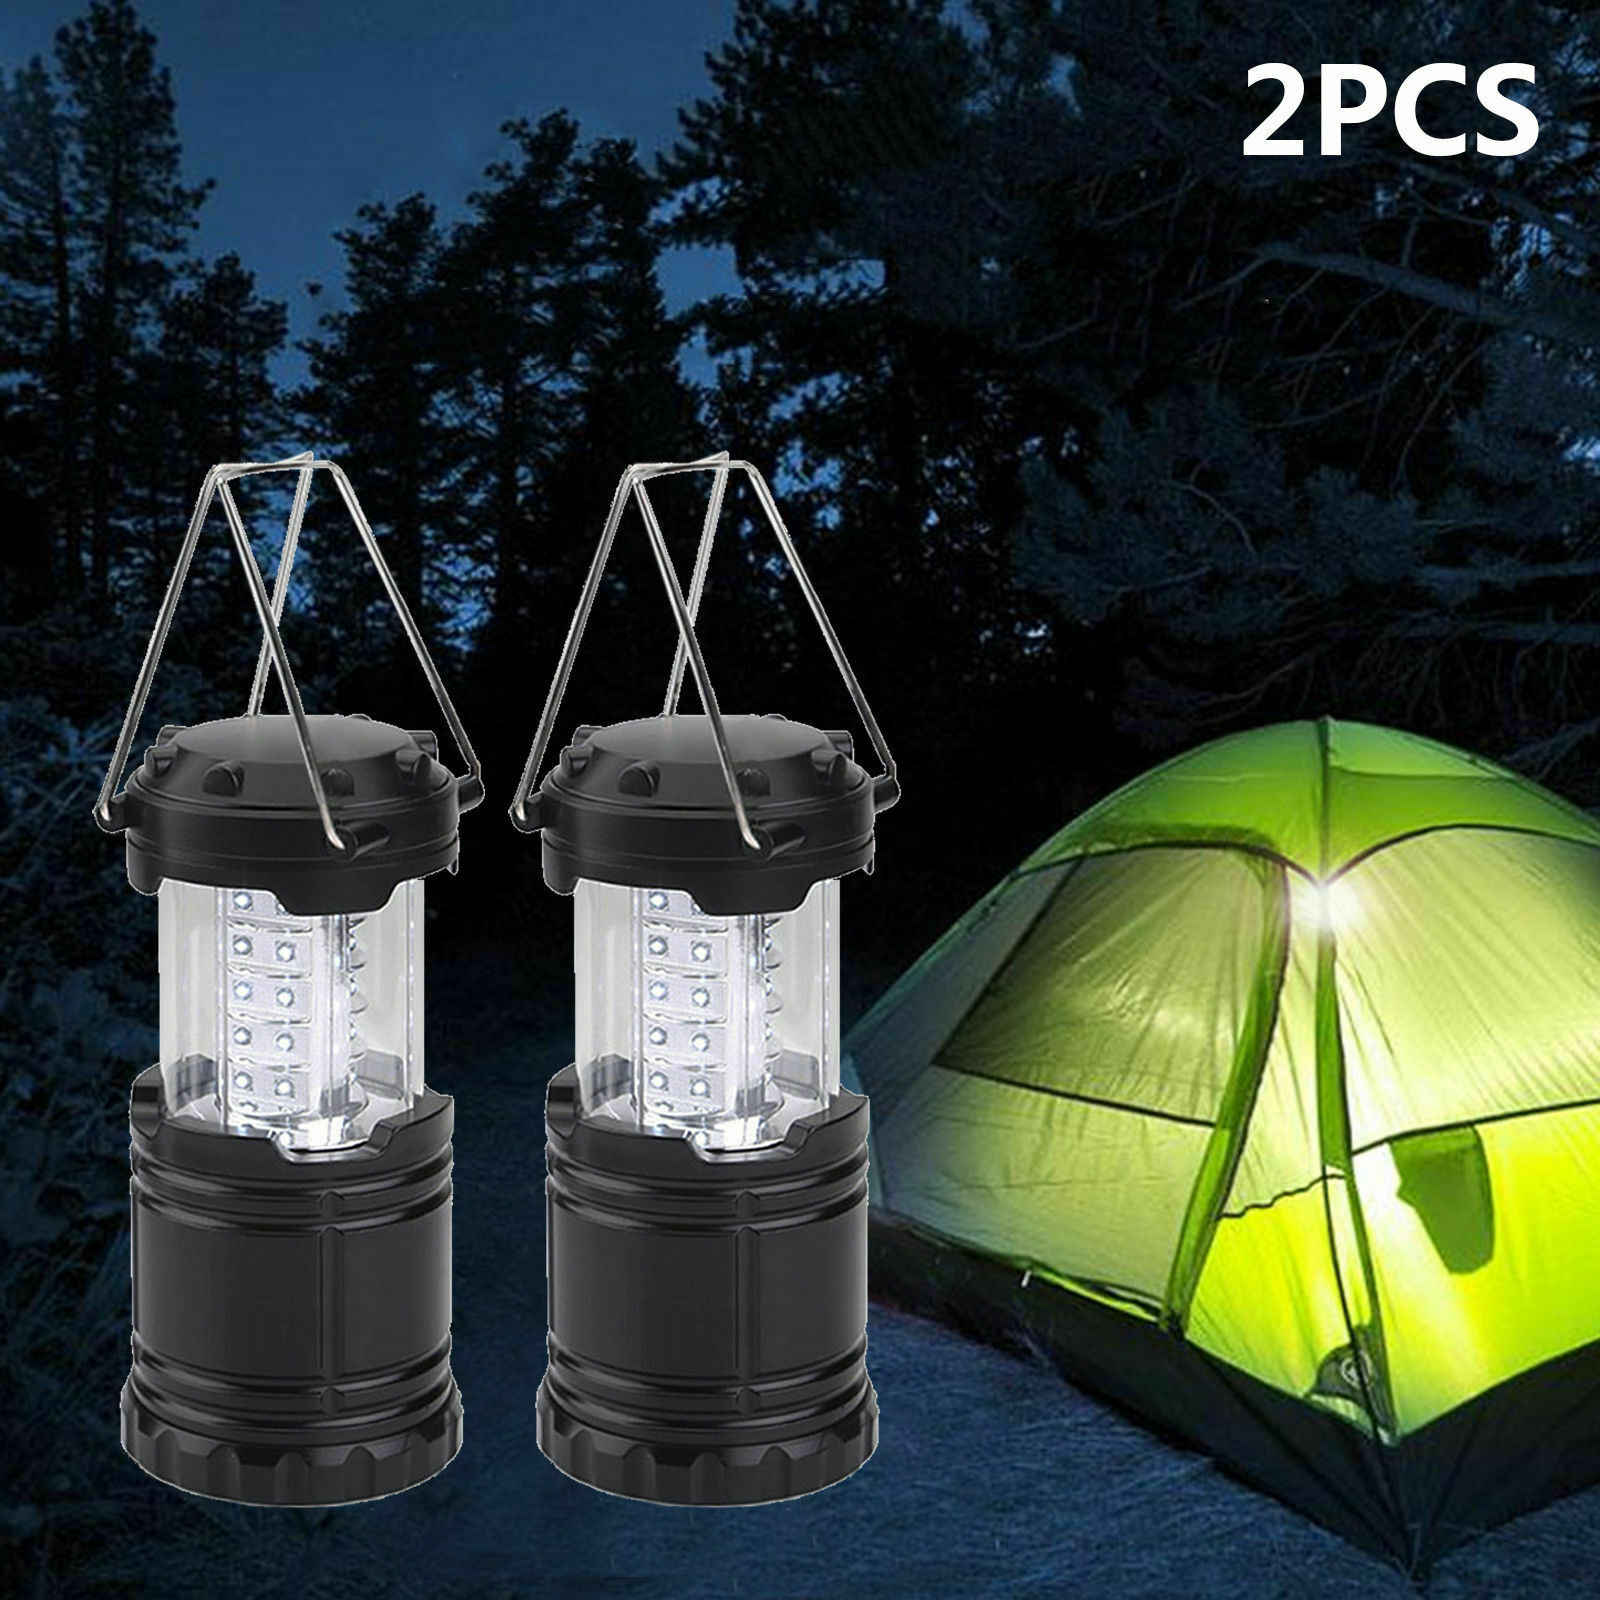 2pcs Camper Auto Accesseries 30LED Draagbare Camping Torch Battery Operated Lantaarn Nachtlampje Tent Lamp